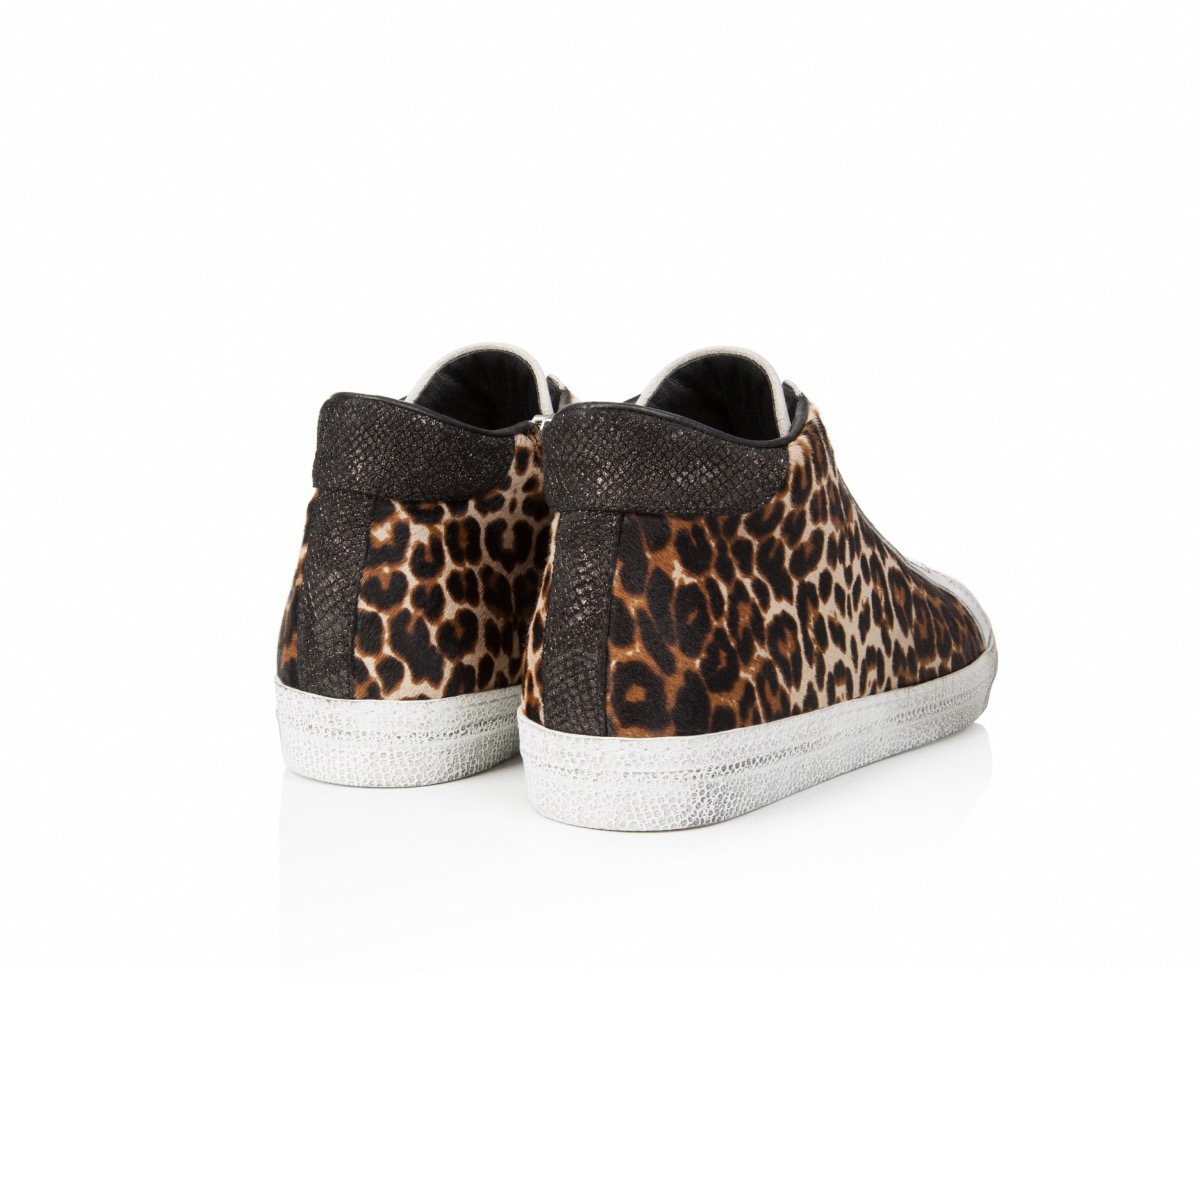 3c4c430247e8 ... AIR & GRACE Alton Leopard Print Leather High Top Trainer ...